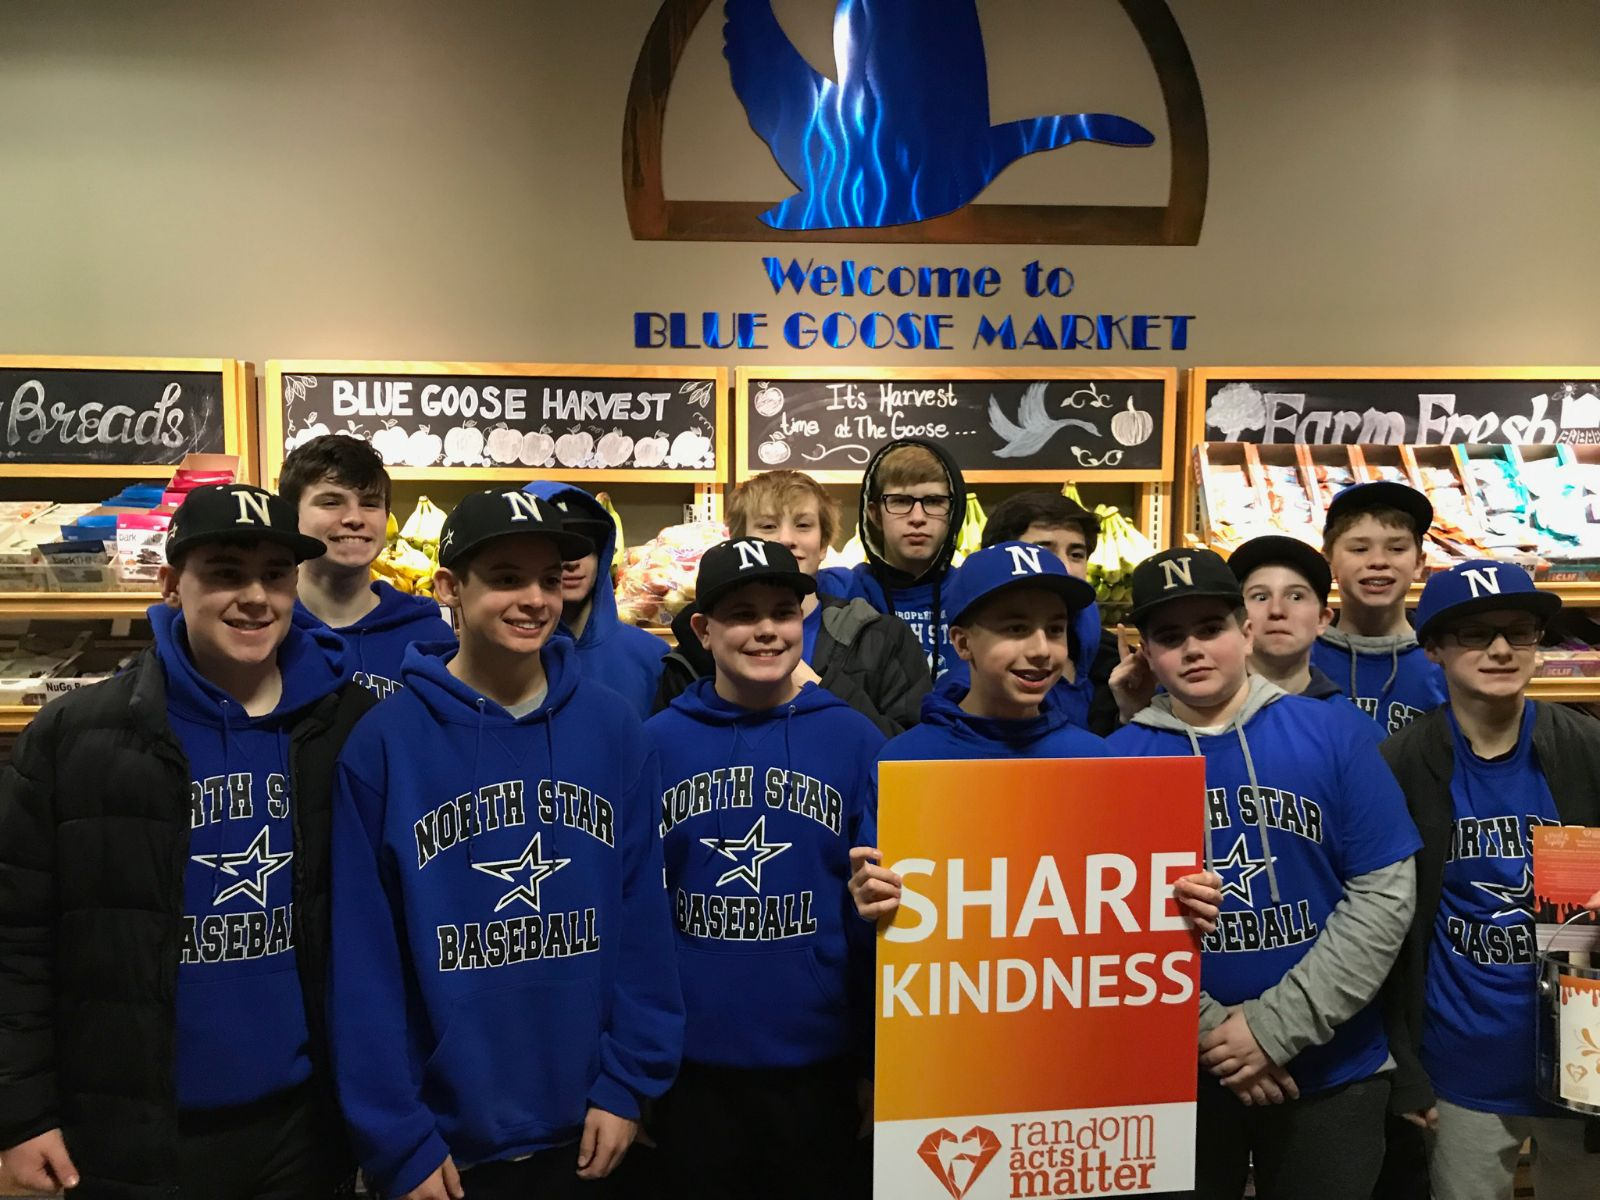 St. Charles North baseball players helped customers carry their groceries!! Great job guys!!